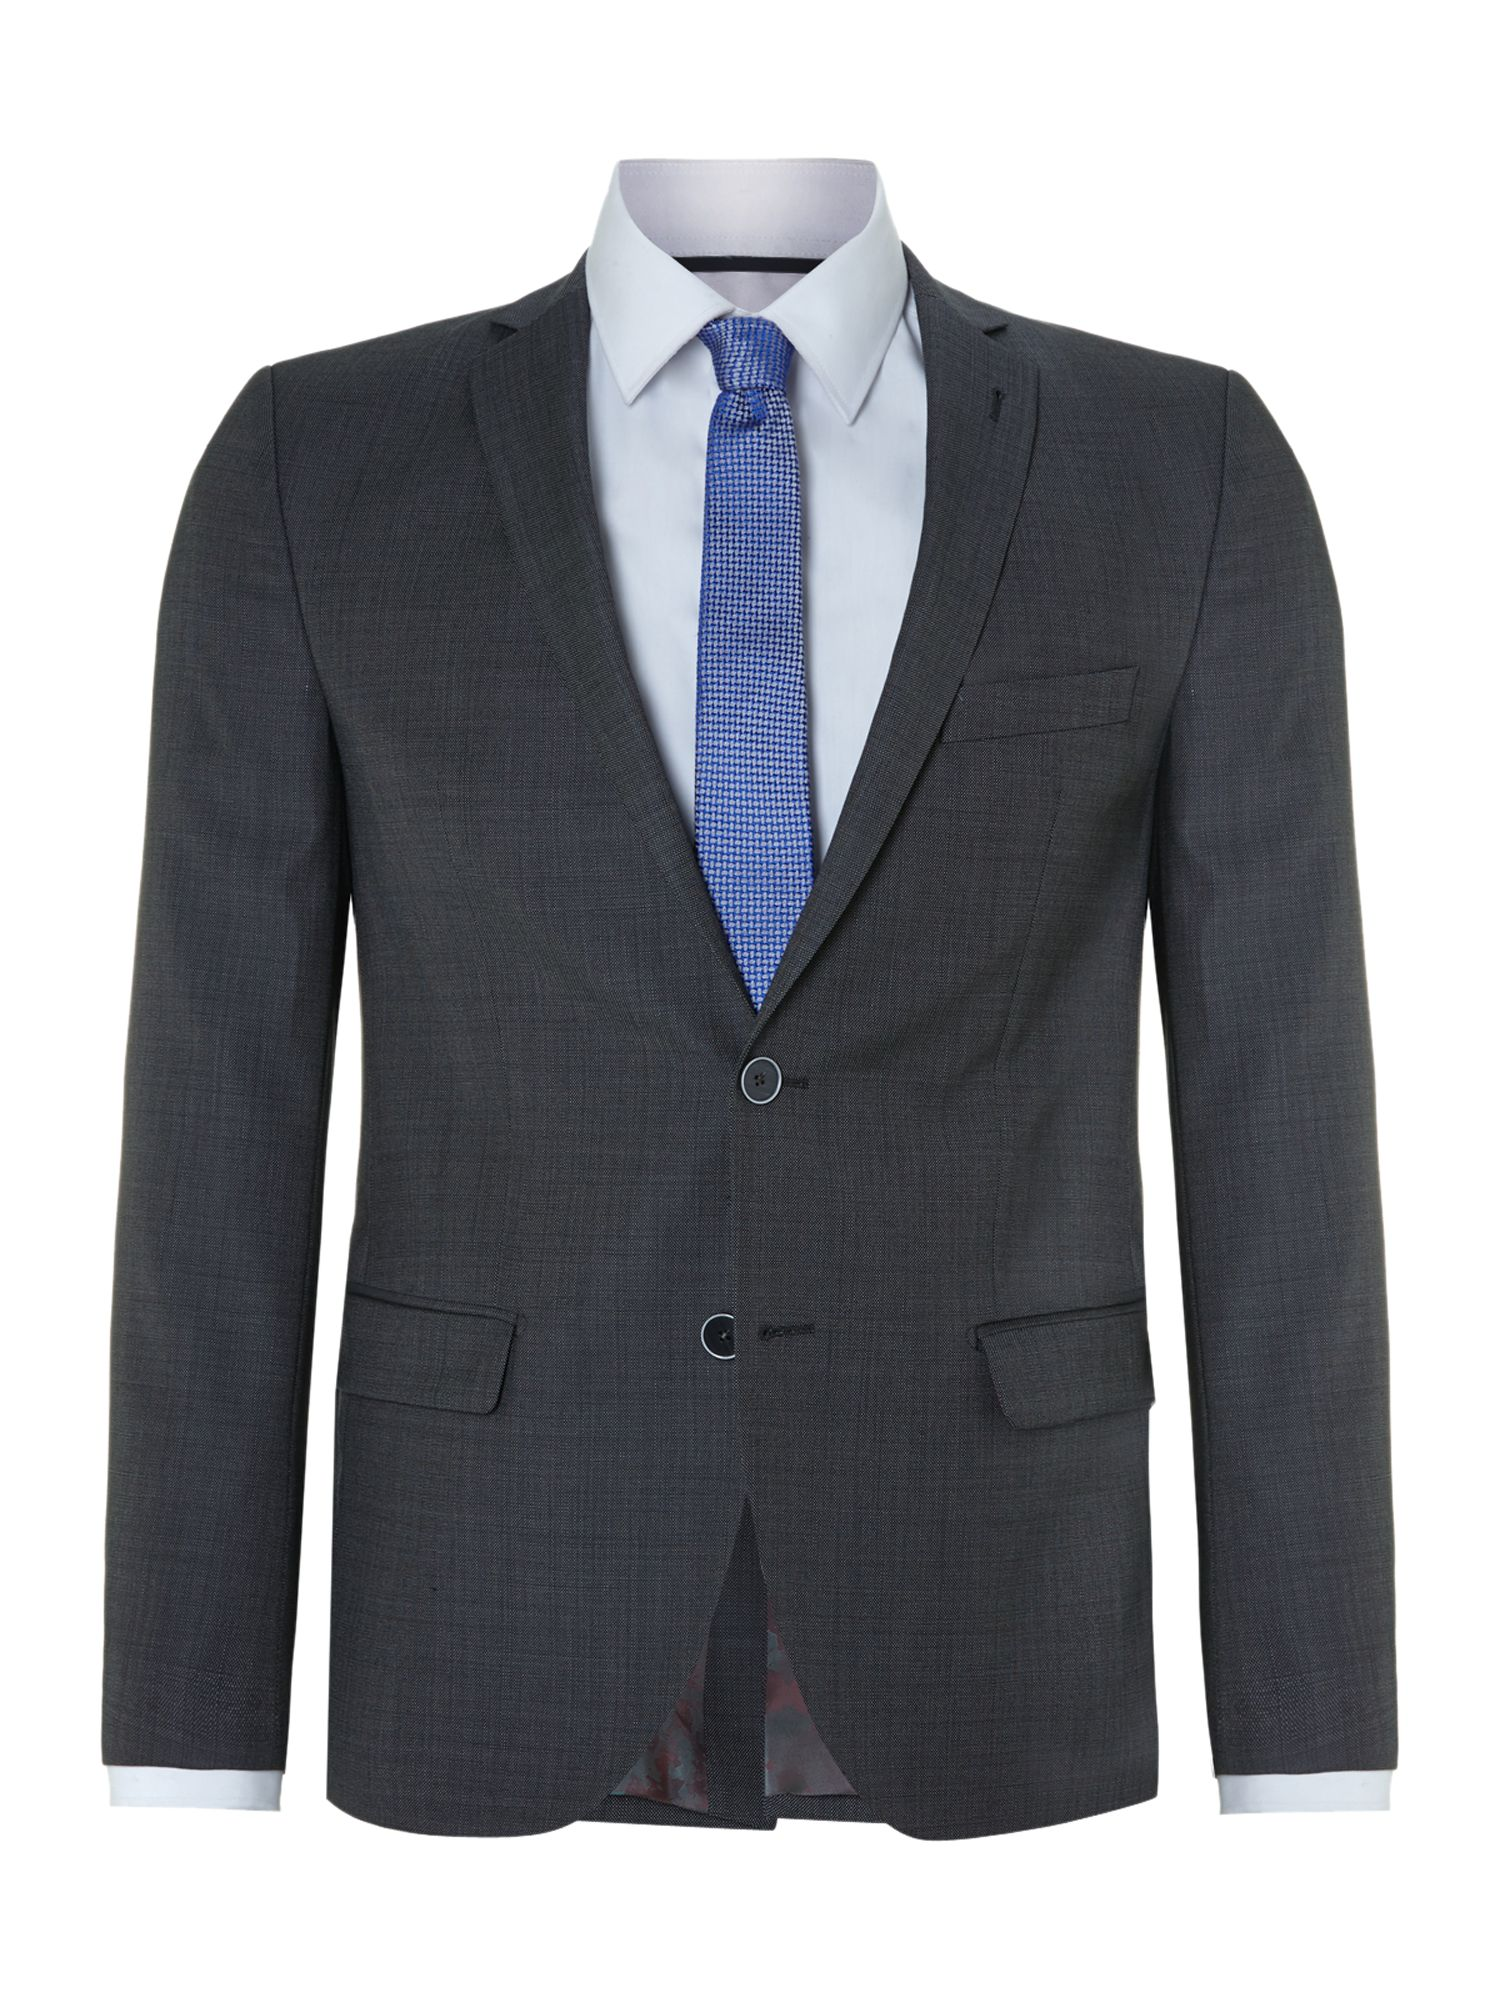 Slim fit birdseye suit